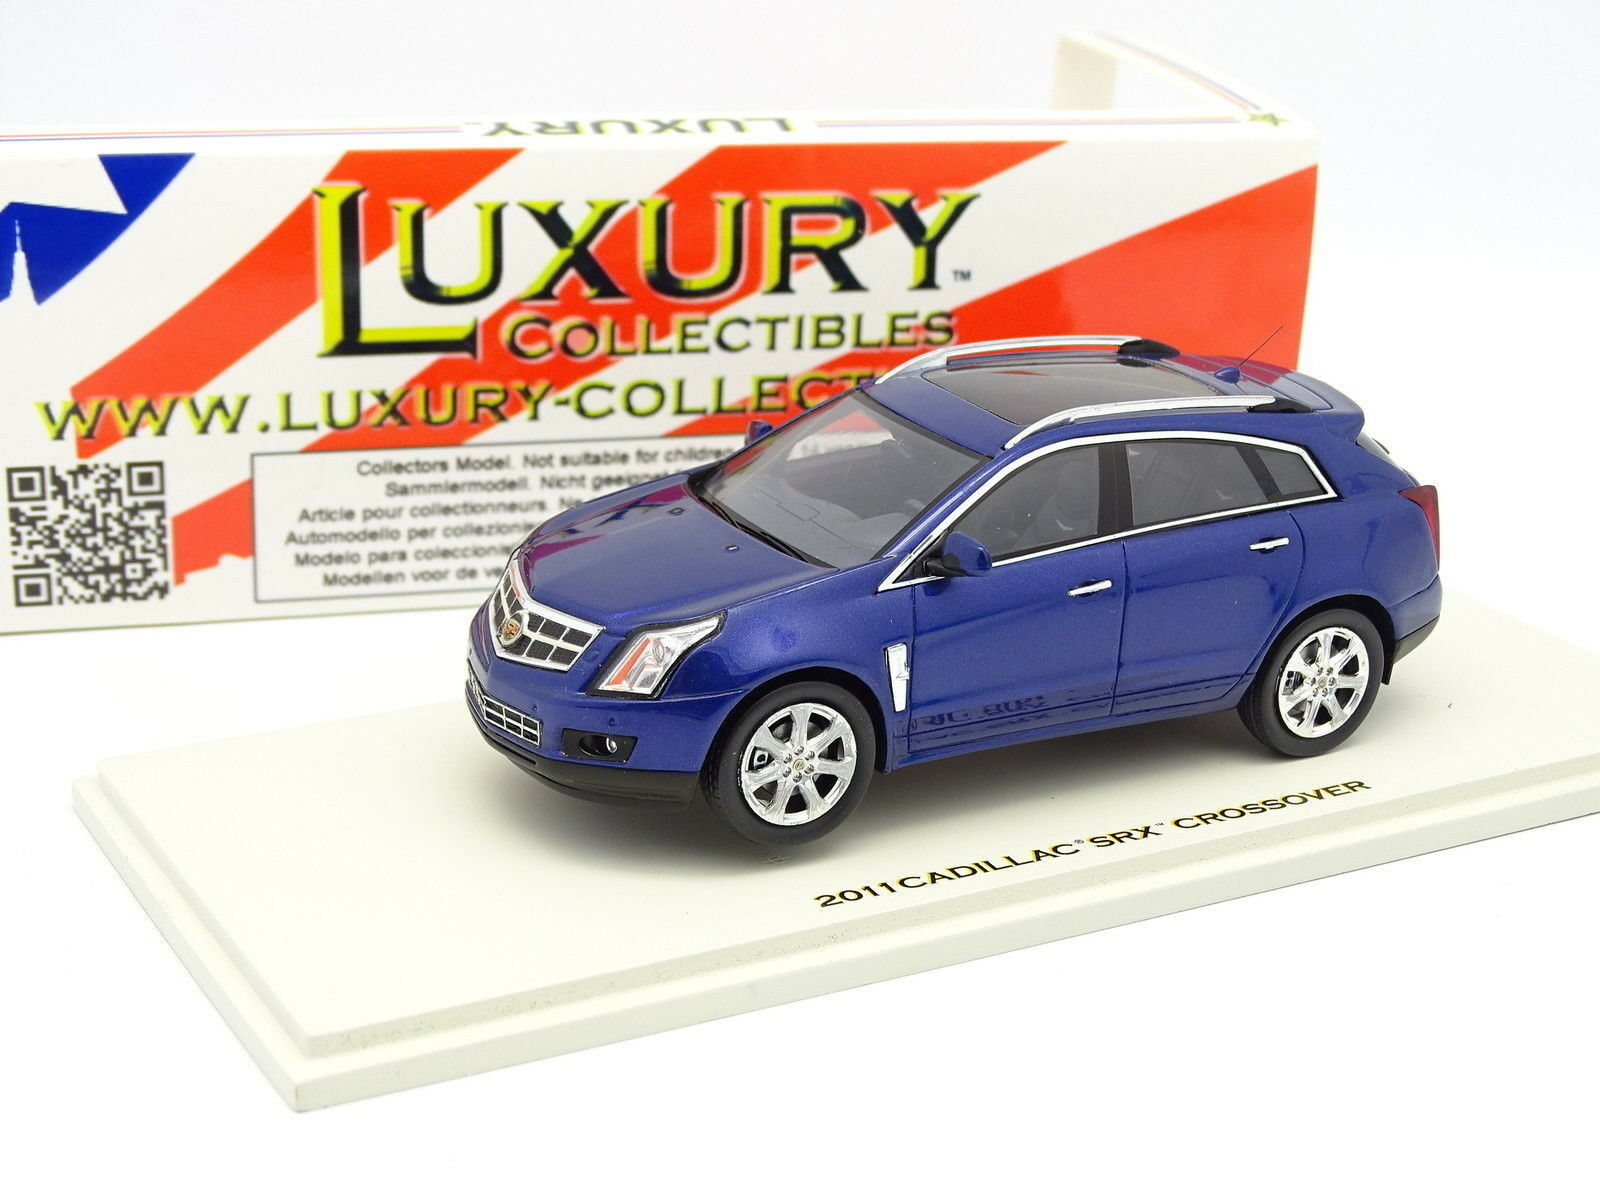 Luxury Collectibles 1 43 - Cadillac SRX Crossover 2011 blue